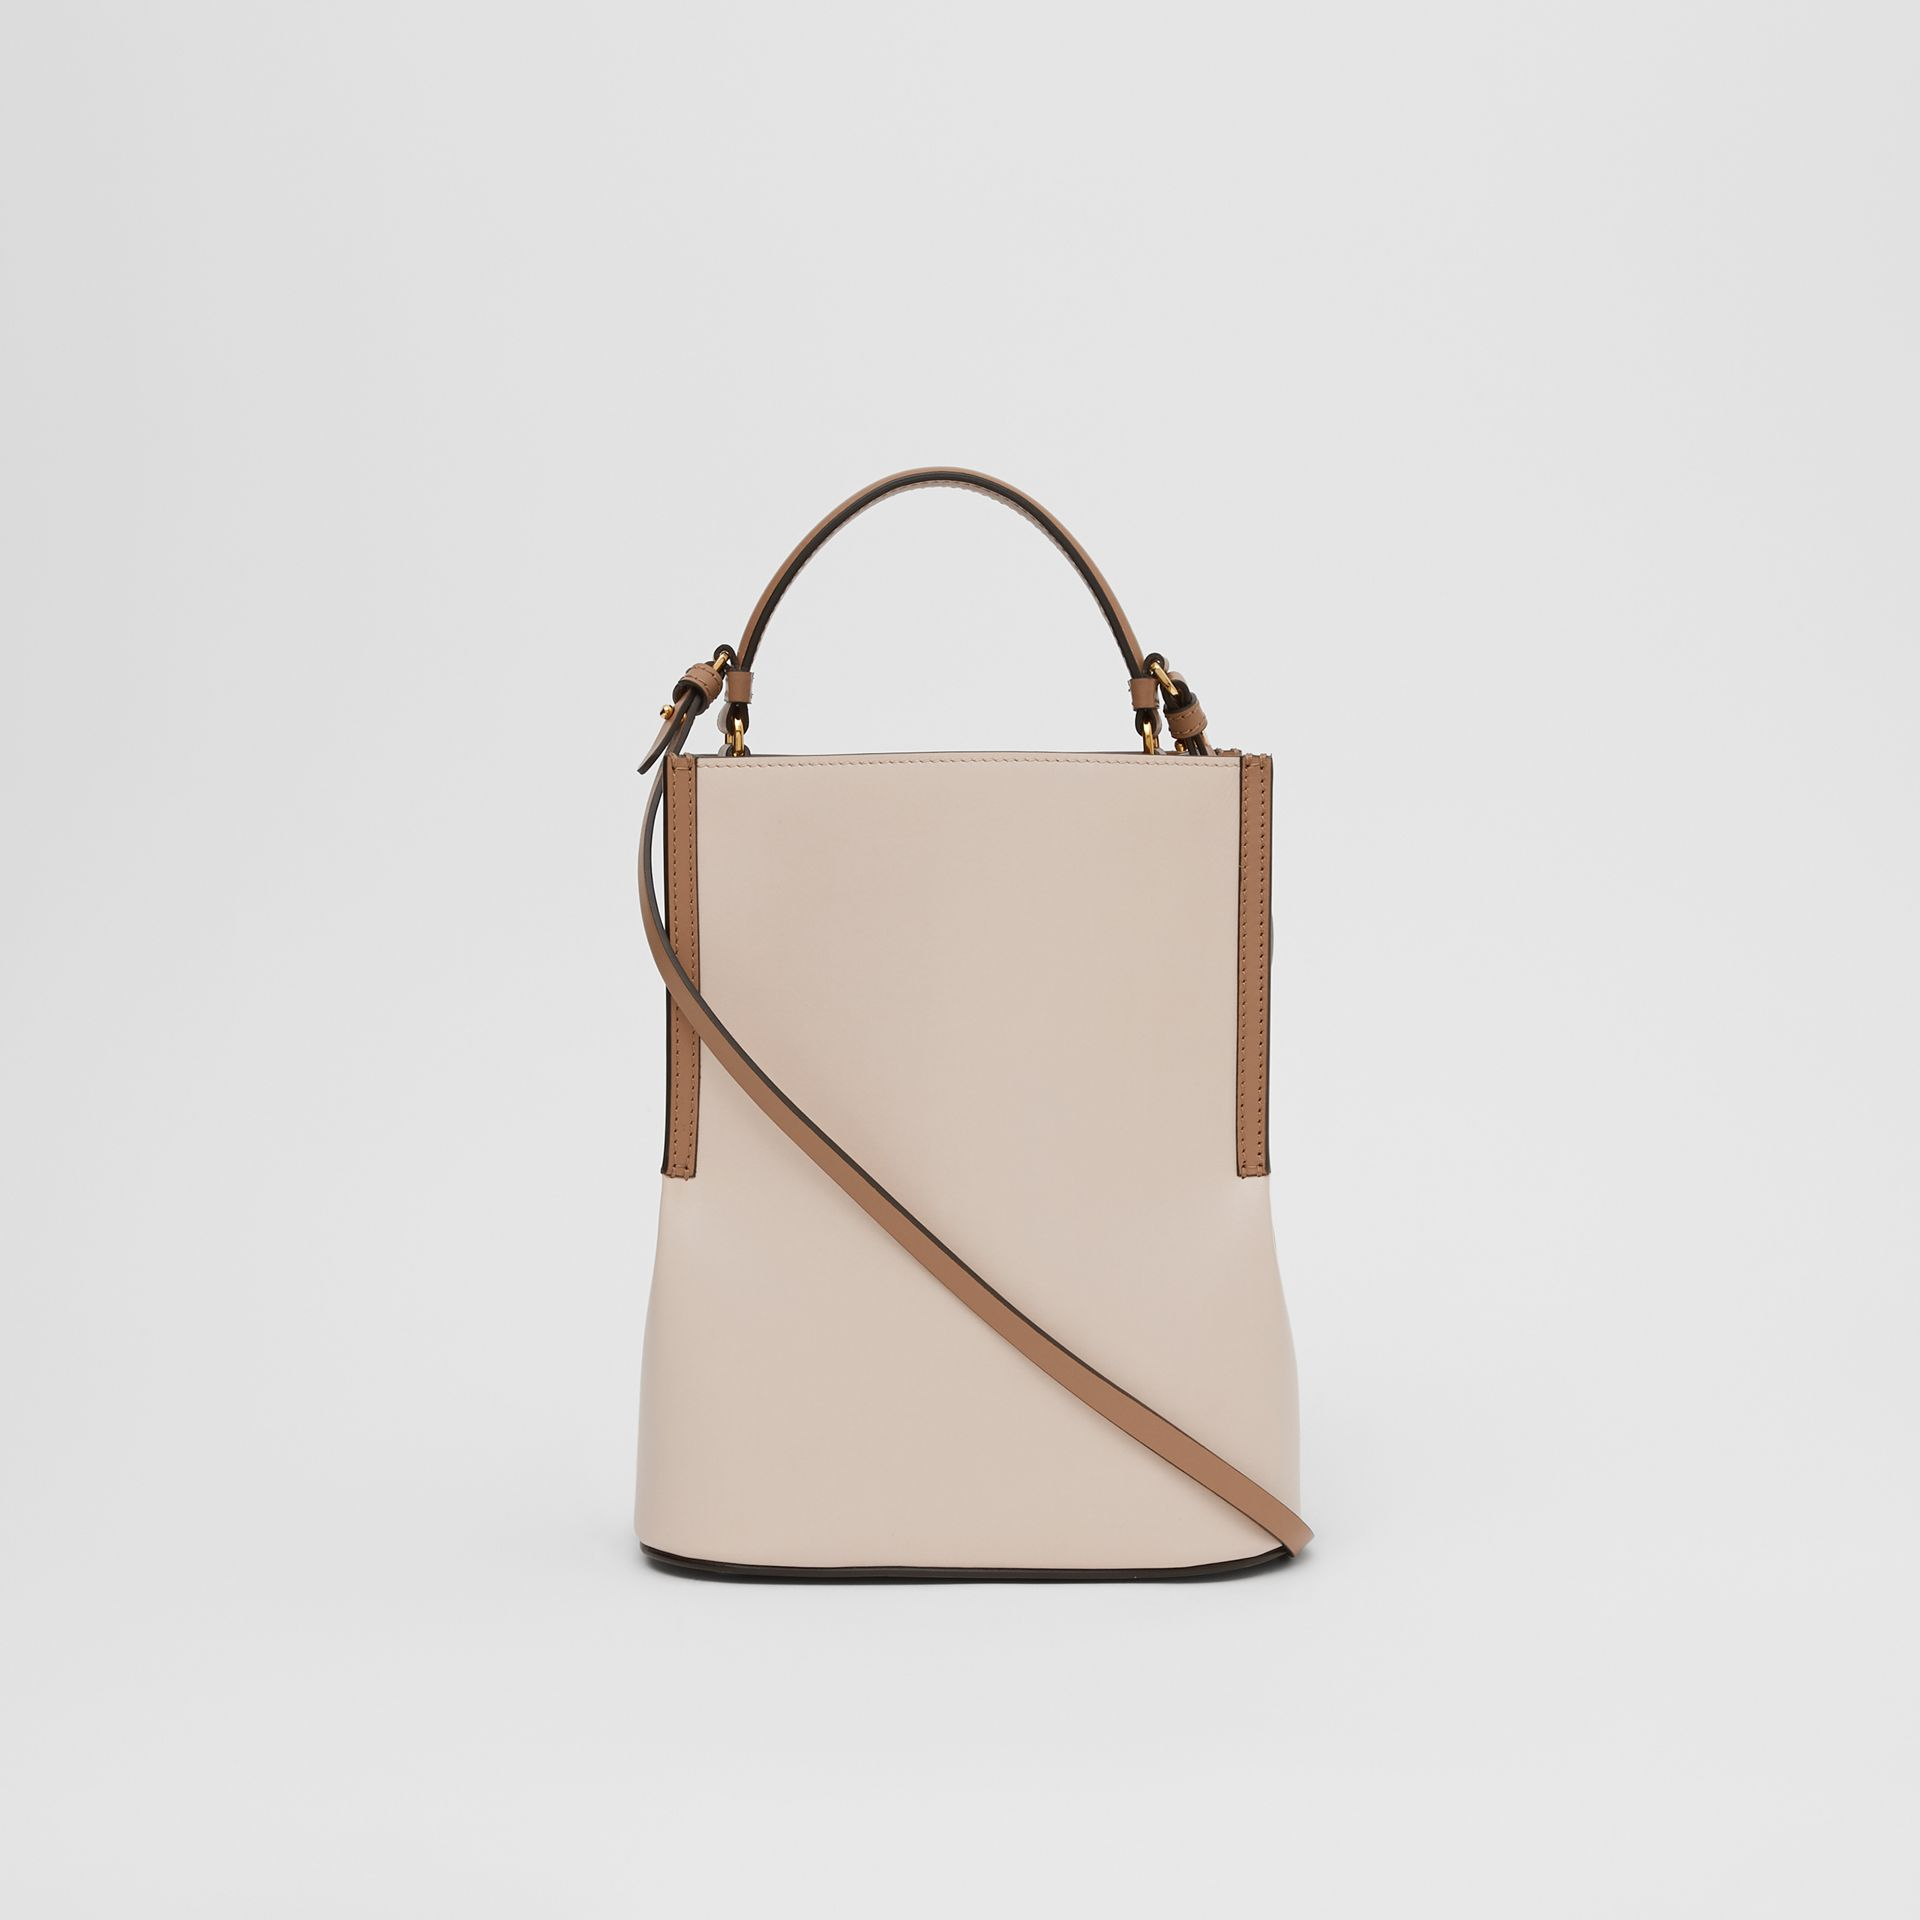 Small Two-tone Leather Peggy Bucket Bag in Buttermilk - Women | Burberry - gallery image 5